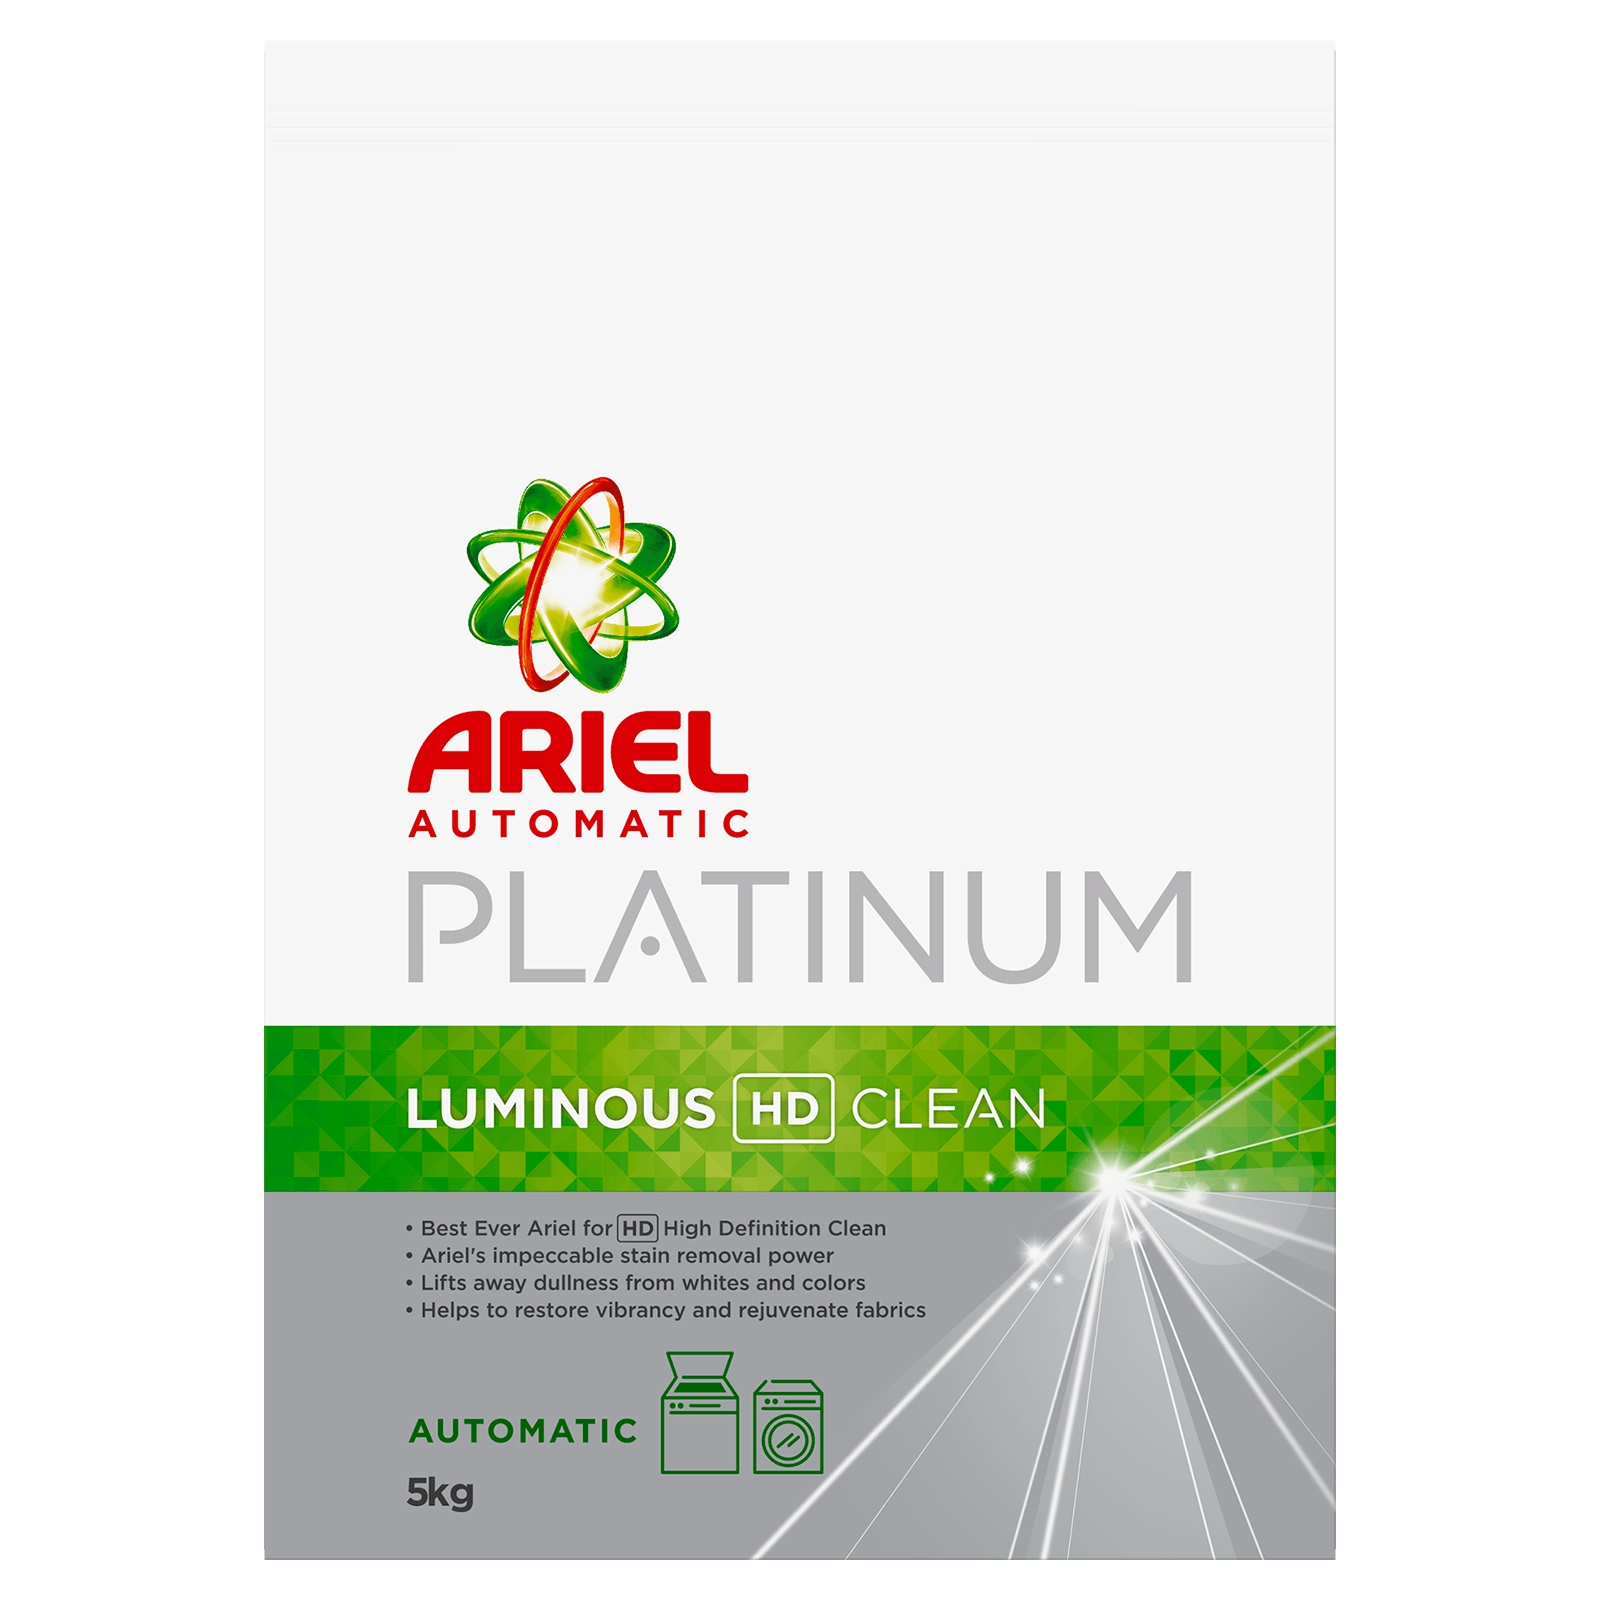 luminous automatic washing powder - ariel platinum